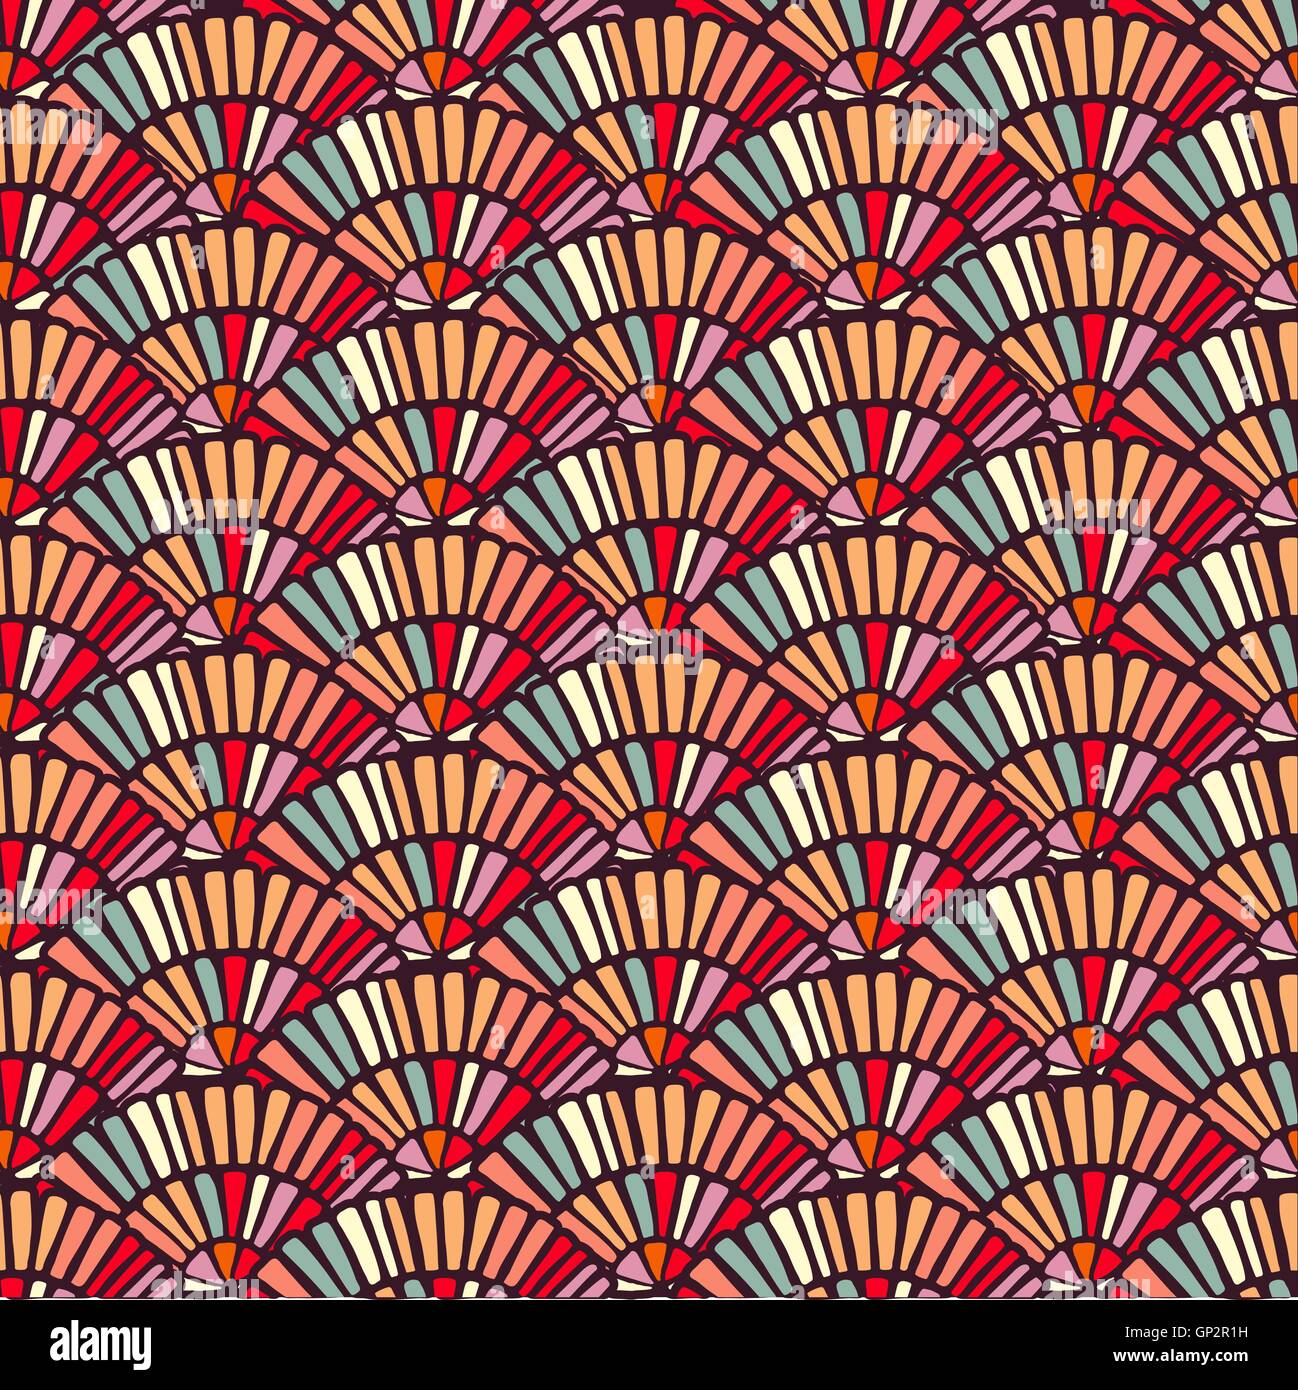 https www alamy com stock photo colorful seamless pattern with hand drawn fans mosaic tile art in 116846621 html